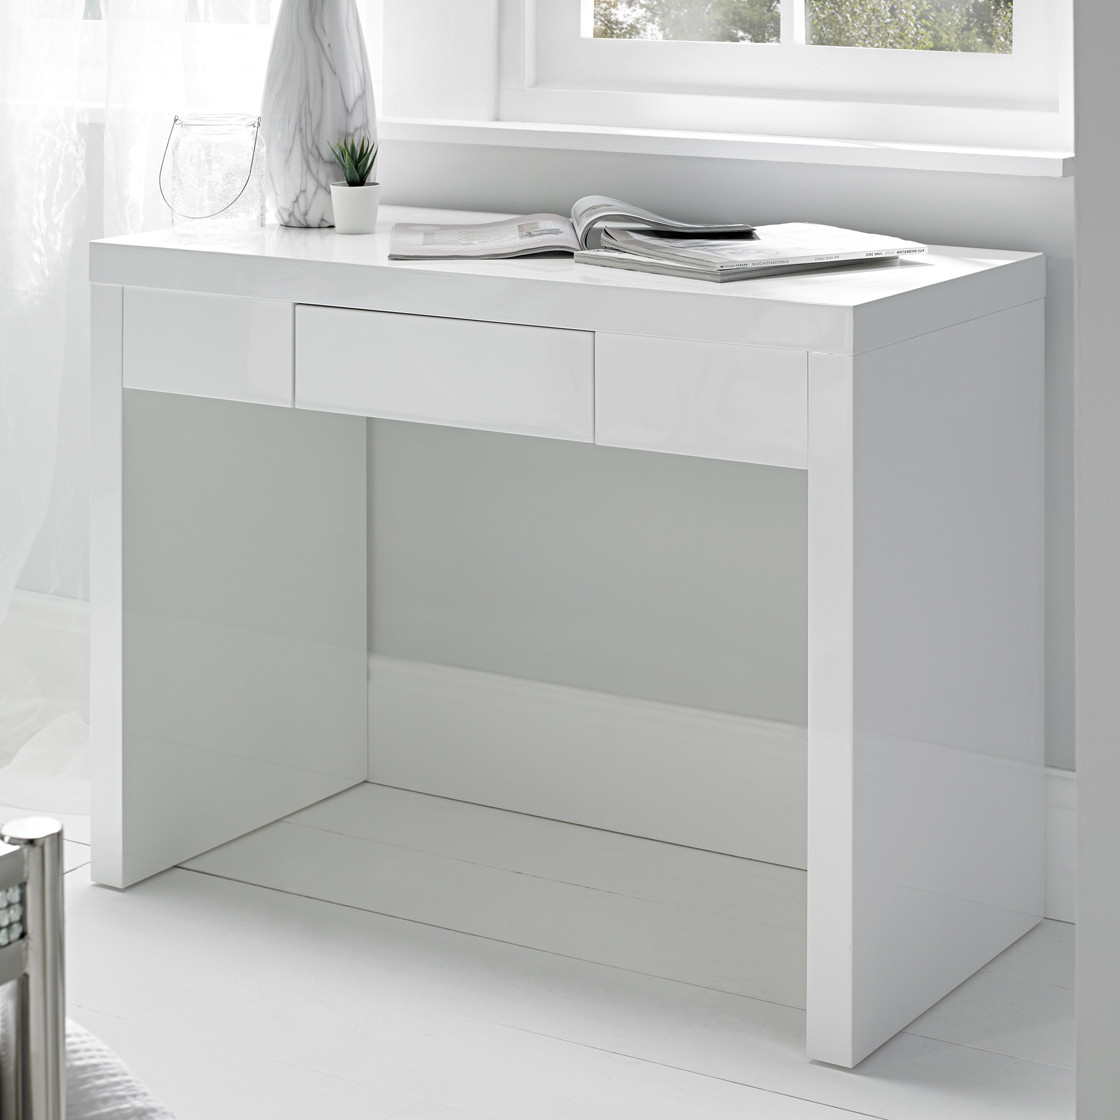 Puro Dressing Table White – Dressing Tables – Bedroom Throughout Puro White Tv Stands (View 9 of 20)